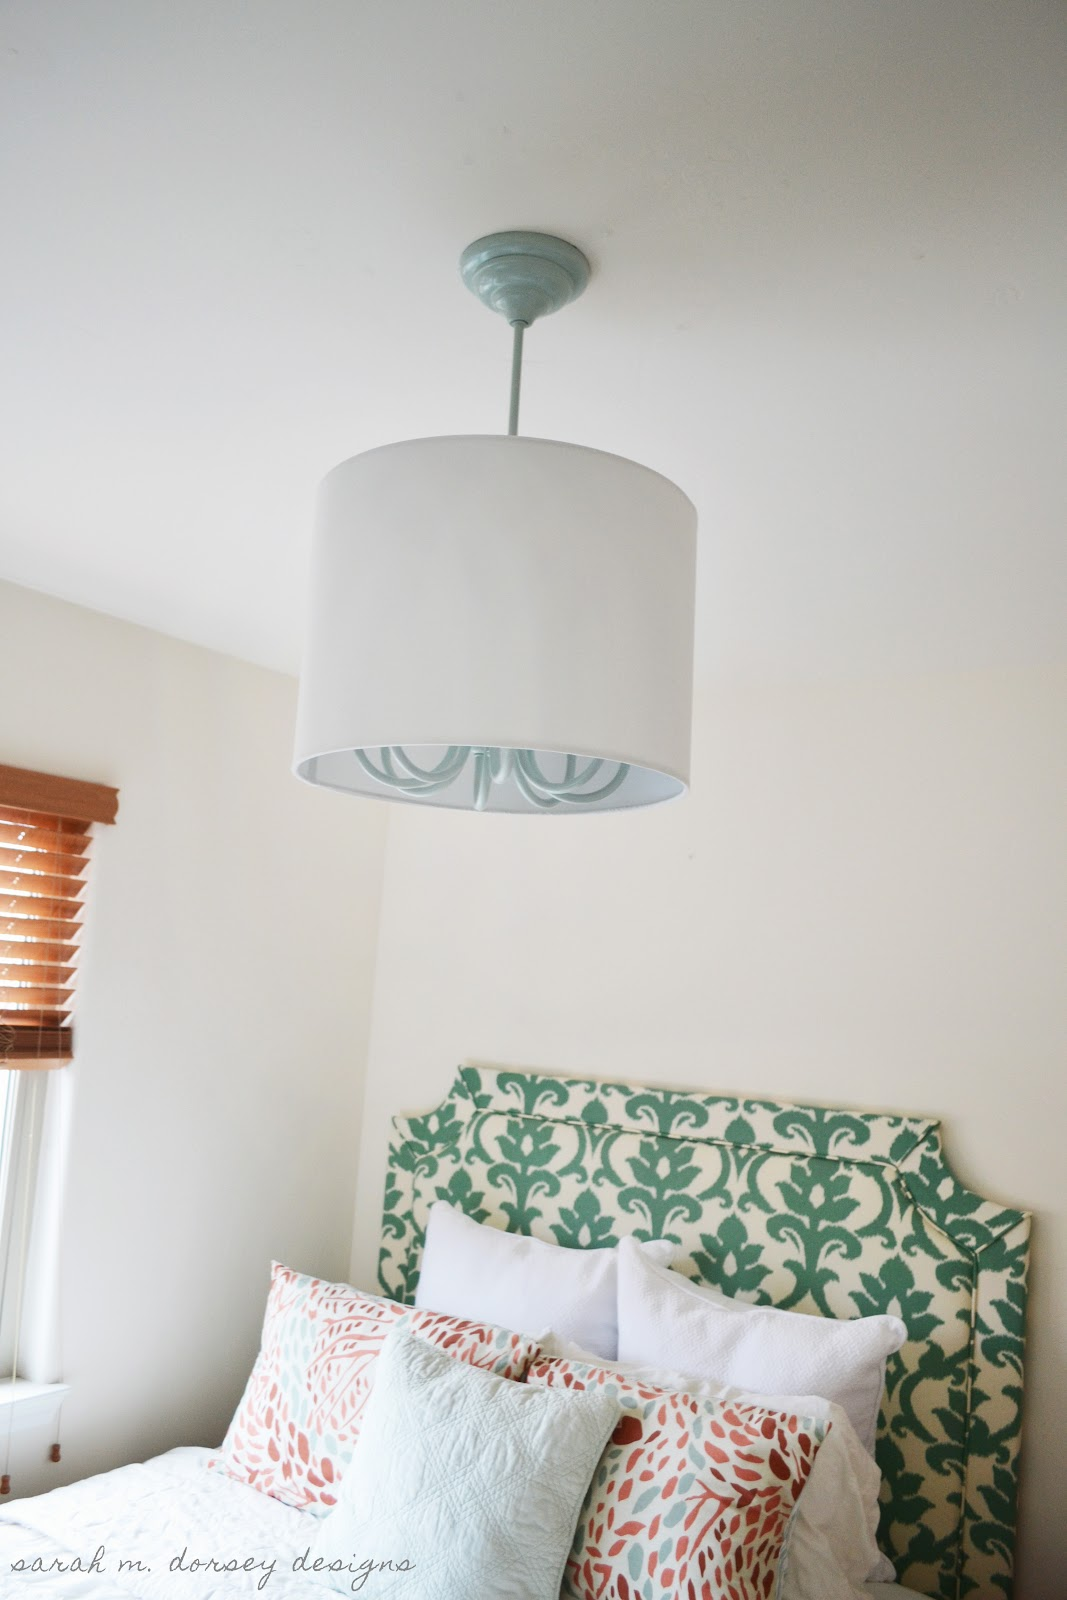 Sarah m dorsey designs how to install a drum shade over a chandelier pin it arubaitofo Images